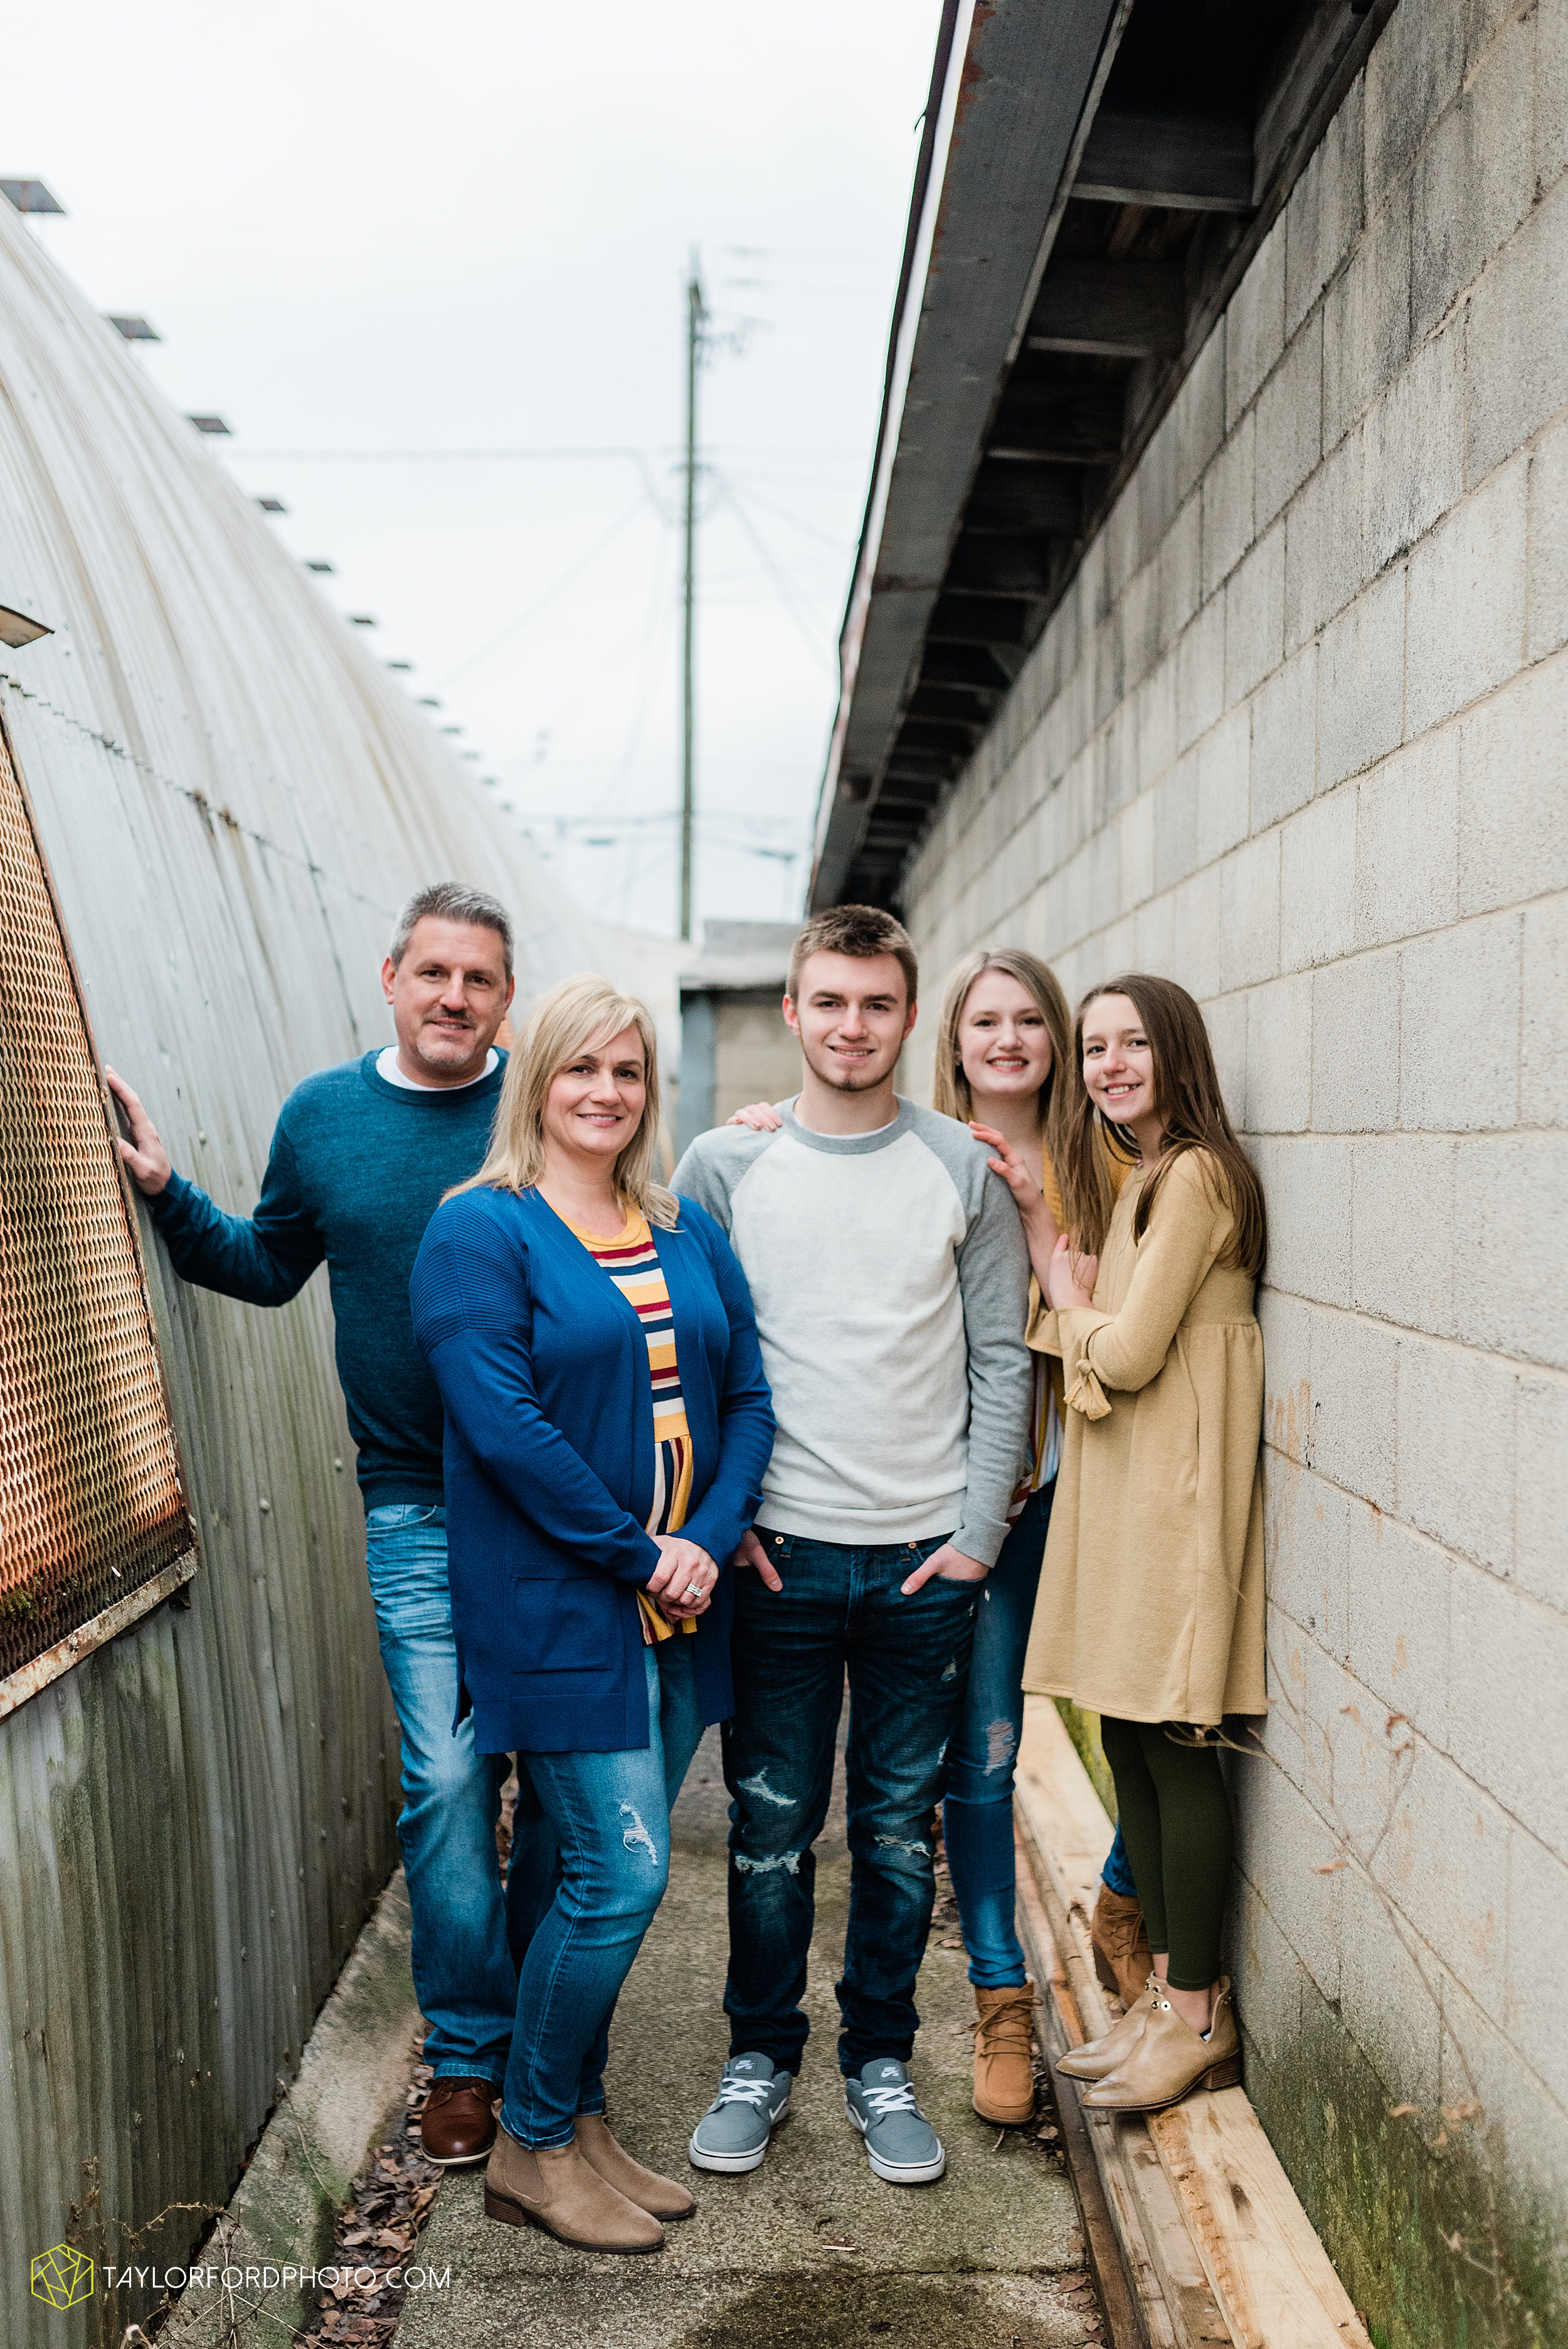 thompson-extended-family-van-wert-ohio-downtown-family-photography-taylor-ford-hirschy-photographer_2074.jpg